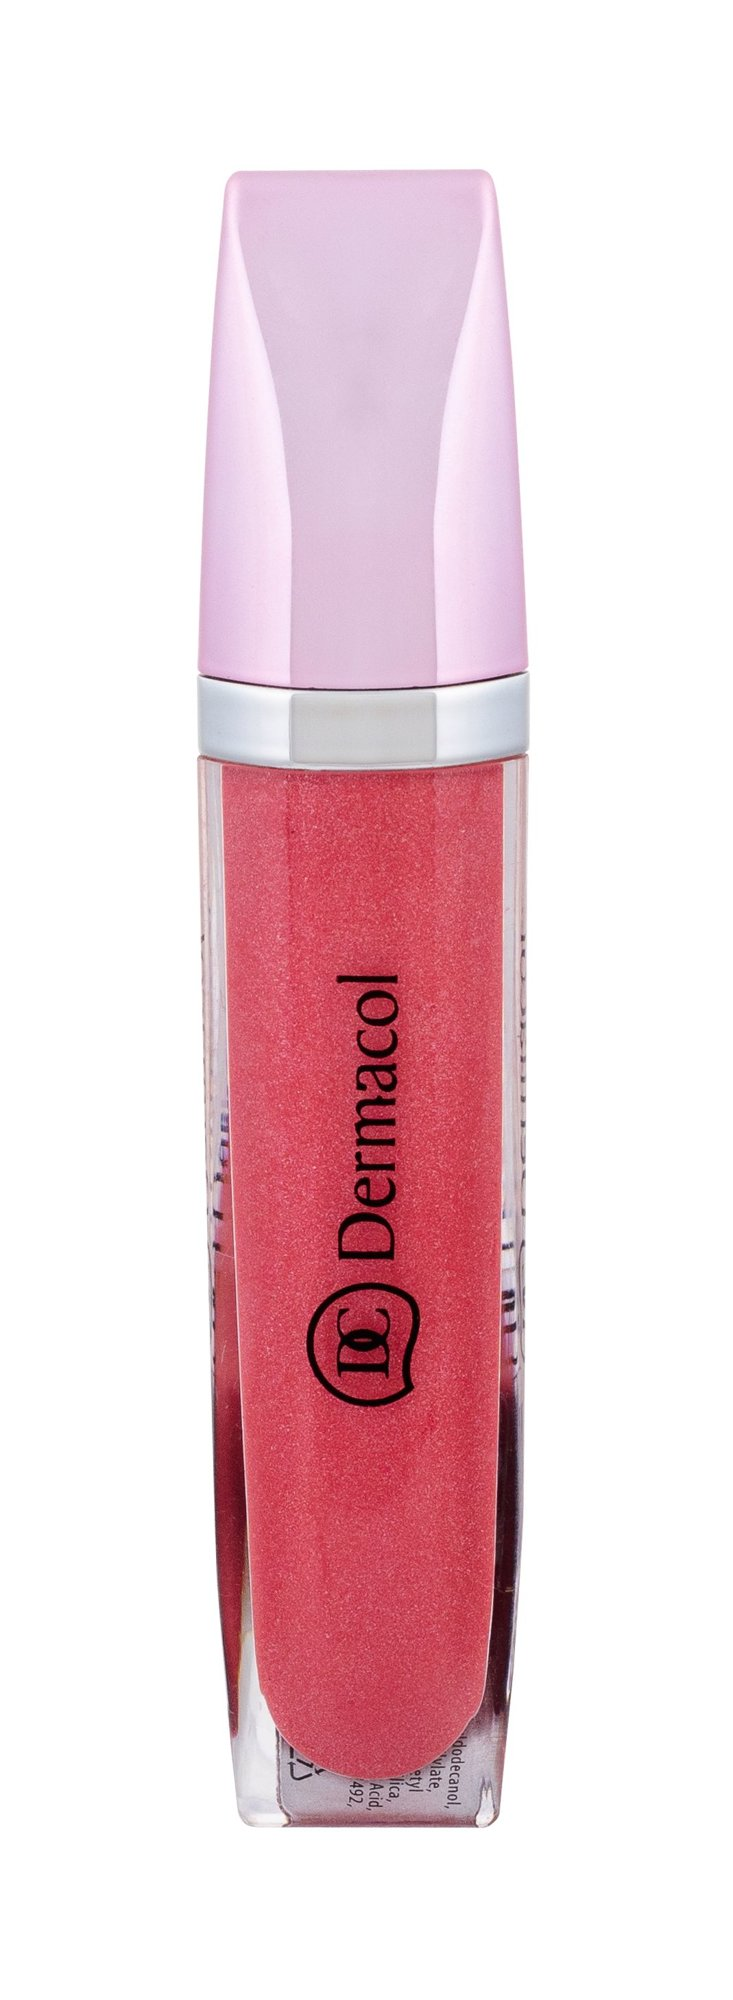 Dermacol Shimmering Cosmetic 8ml 6